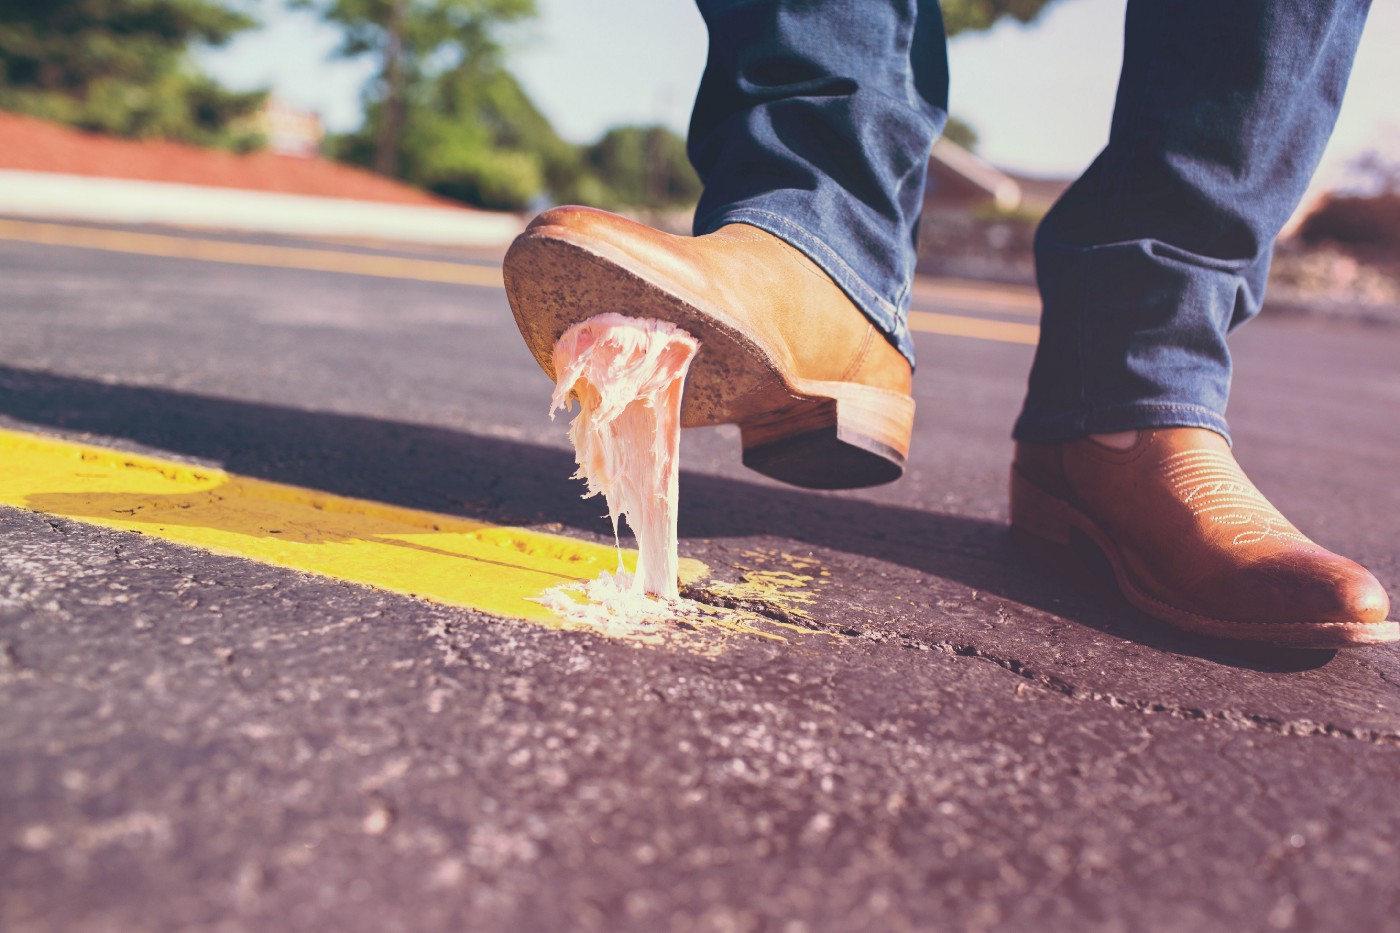 A person wearing blue jeans stepping on pink gum on the road